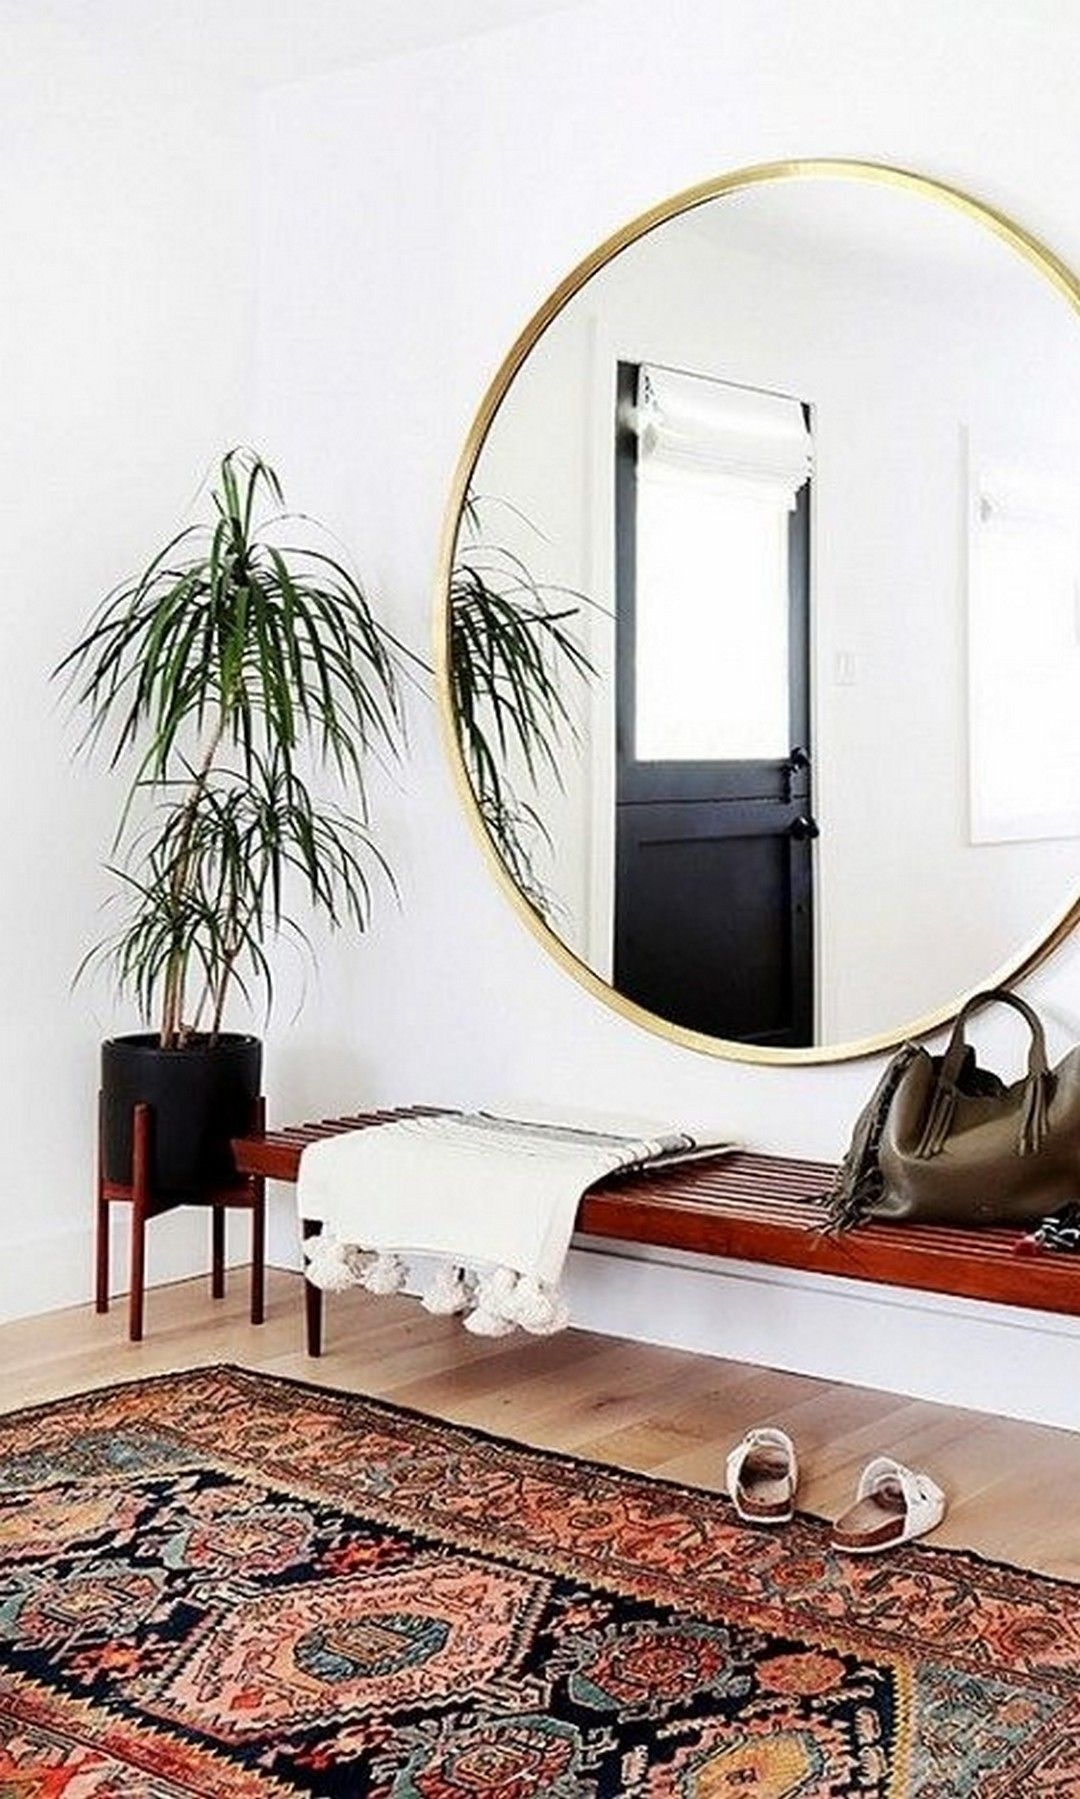 What's Hot On Pinterest: Why Boho Chic Decor Again?